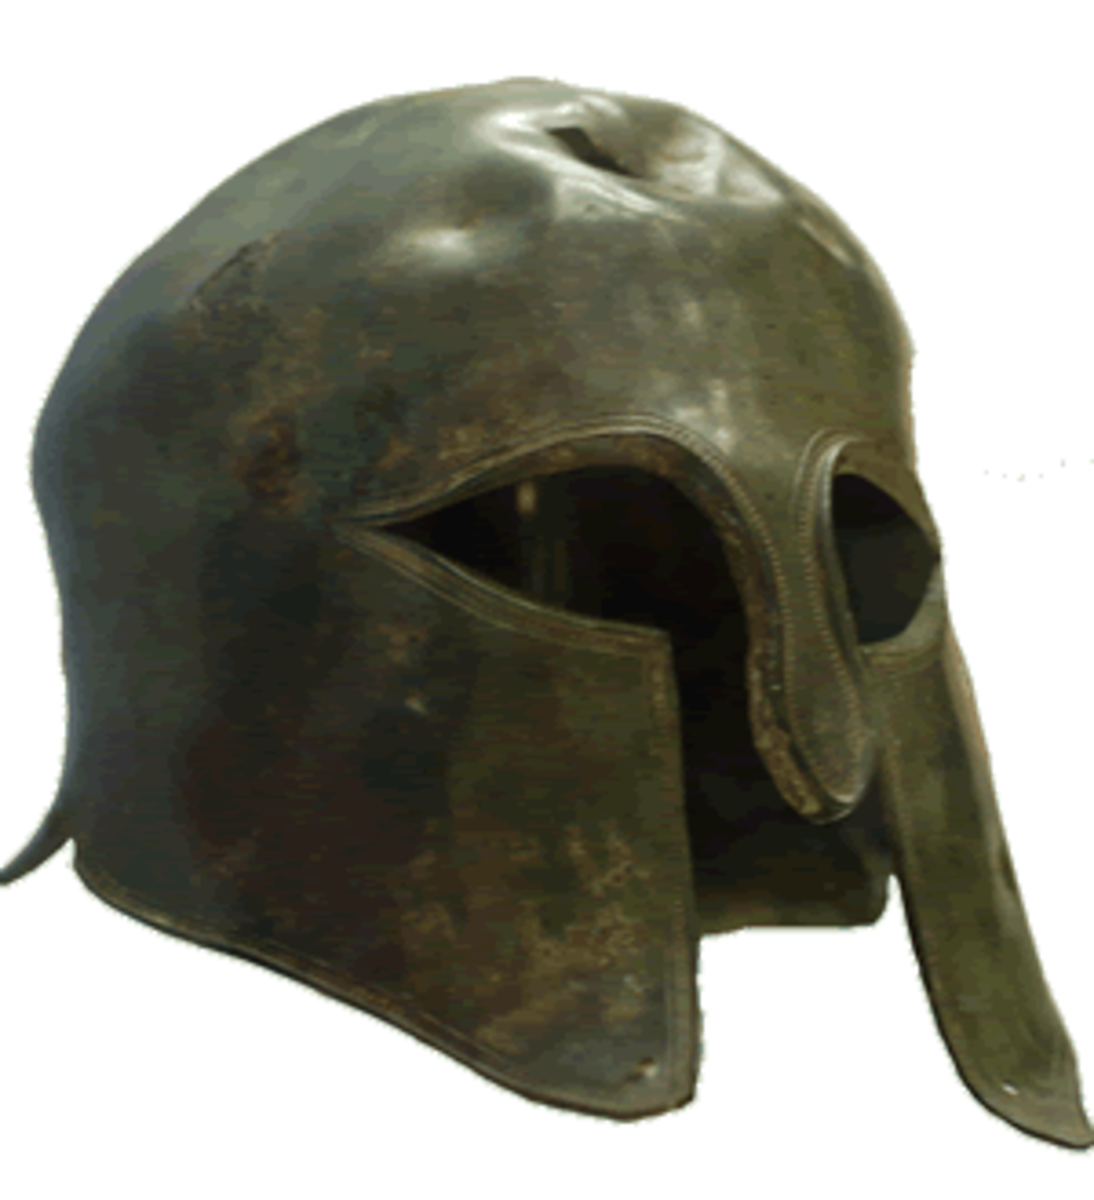 Spartan soldiers were outfitted in bronze helmets that covered the face and neck. This helmet is on display at the British Museum. The damage at the top of the helmet was probably sustained in an ancient battle.